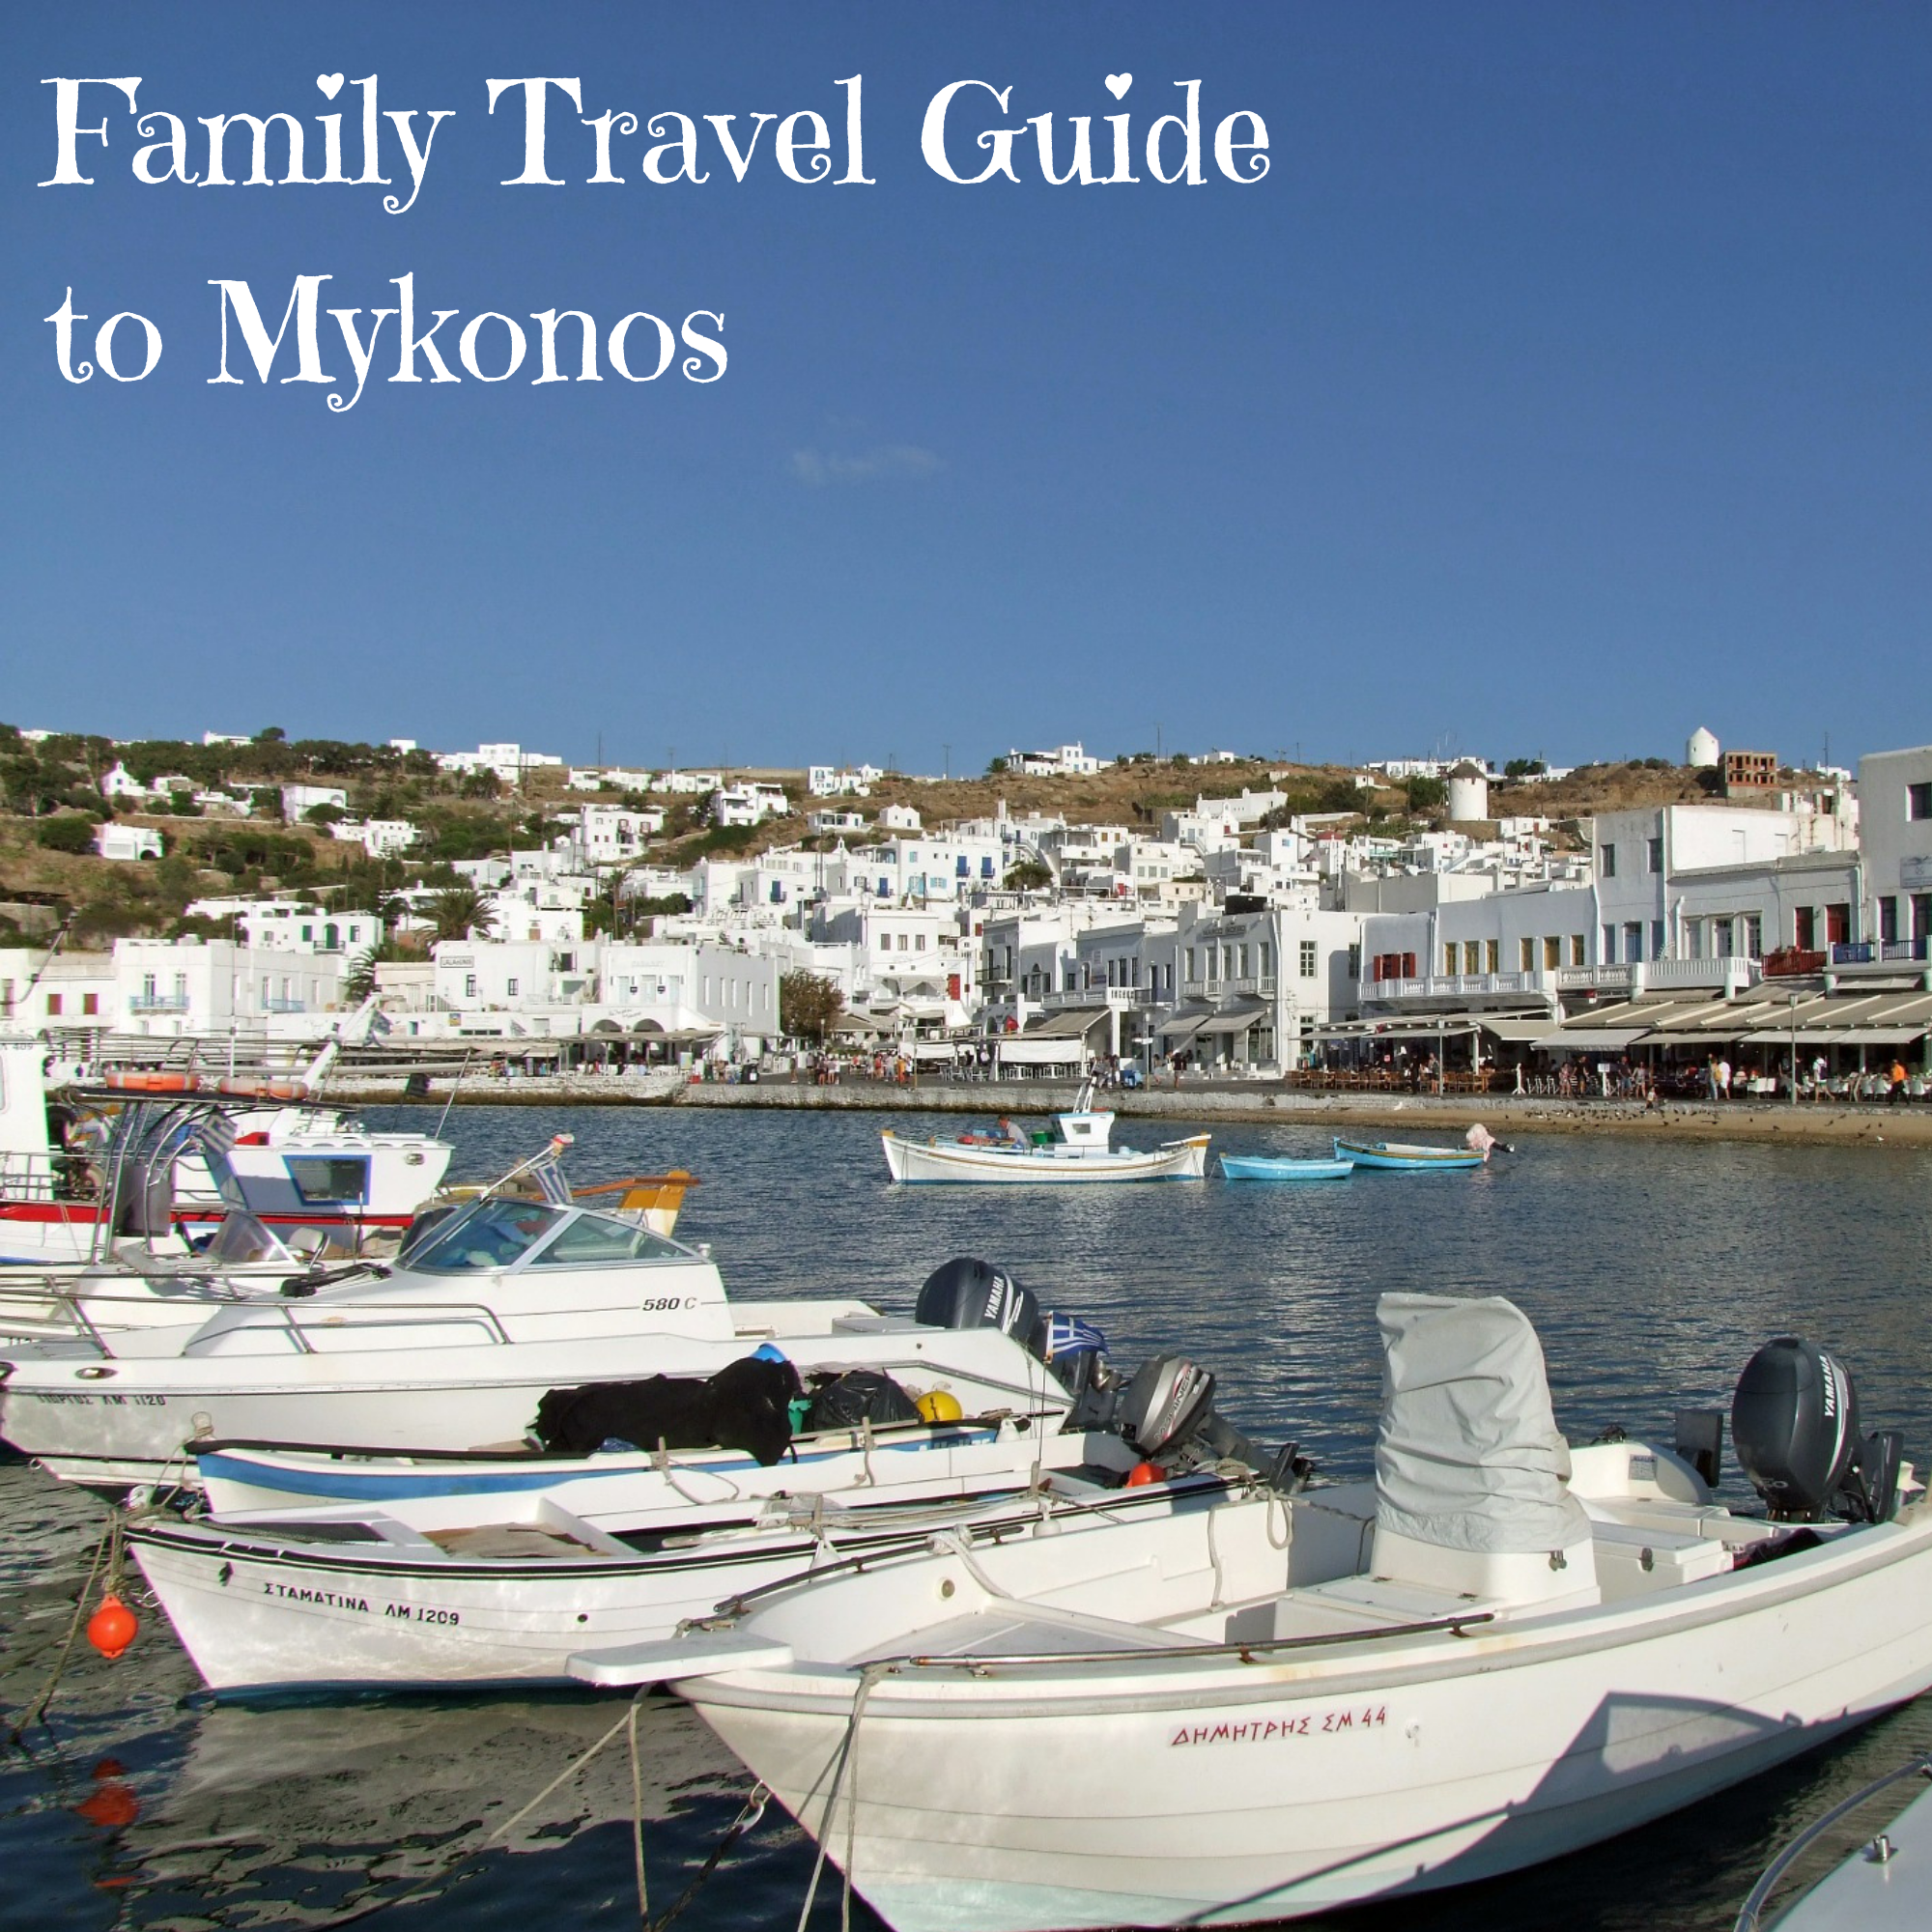 Family Travel Guide to Mykonos